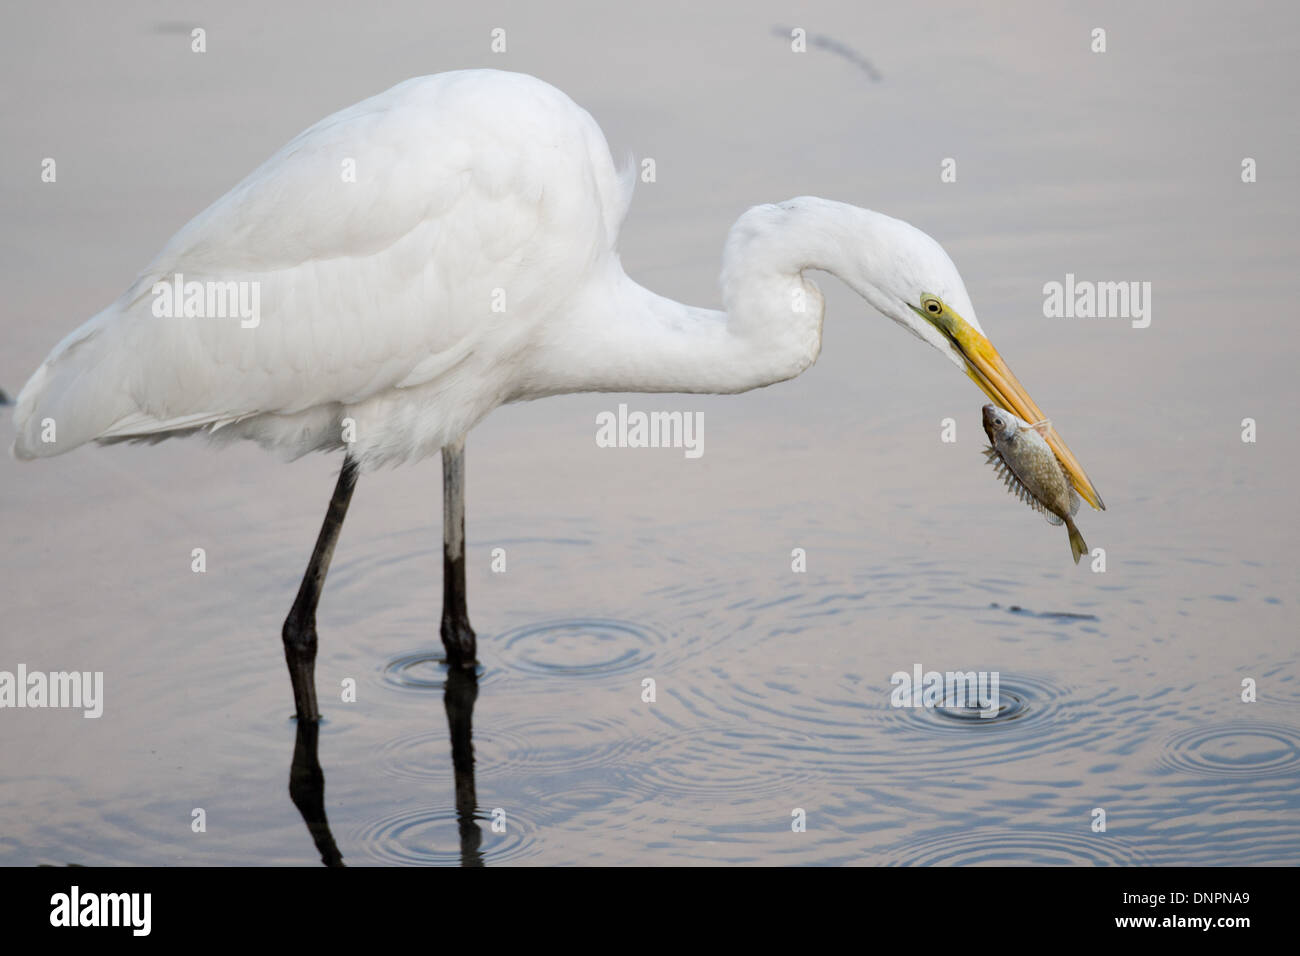 Great Egret, Ardea alba, catching fish, Hong Kong, Pearl River Delta. - Stock Image